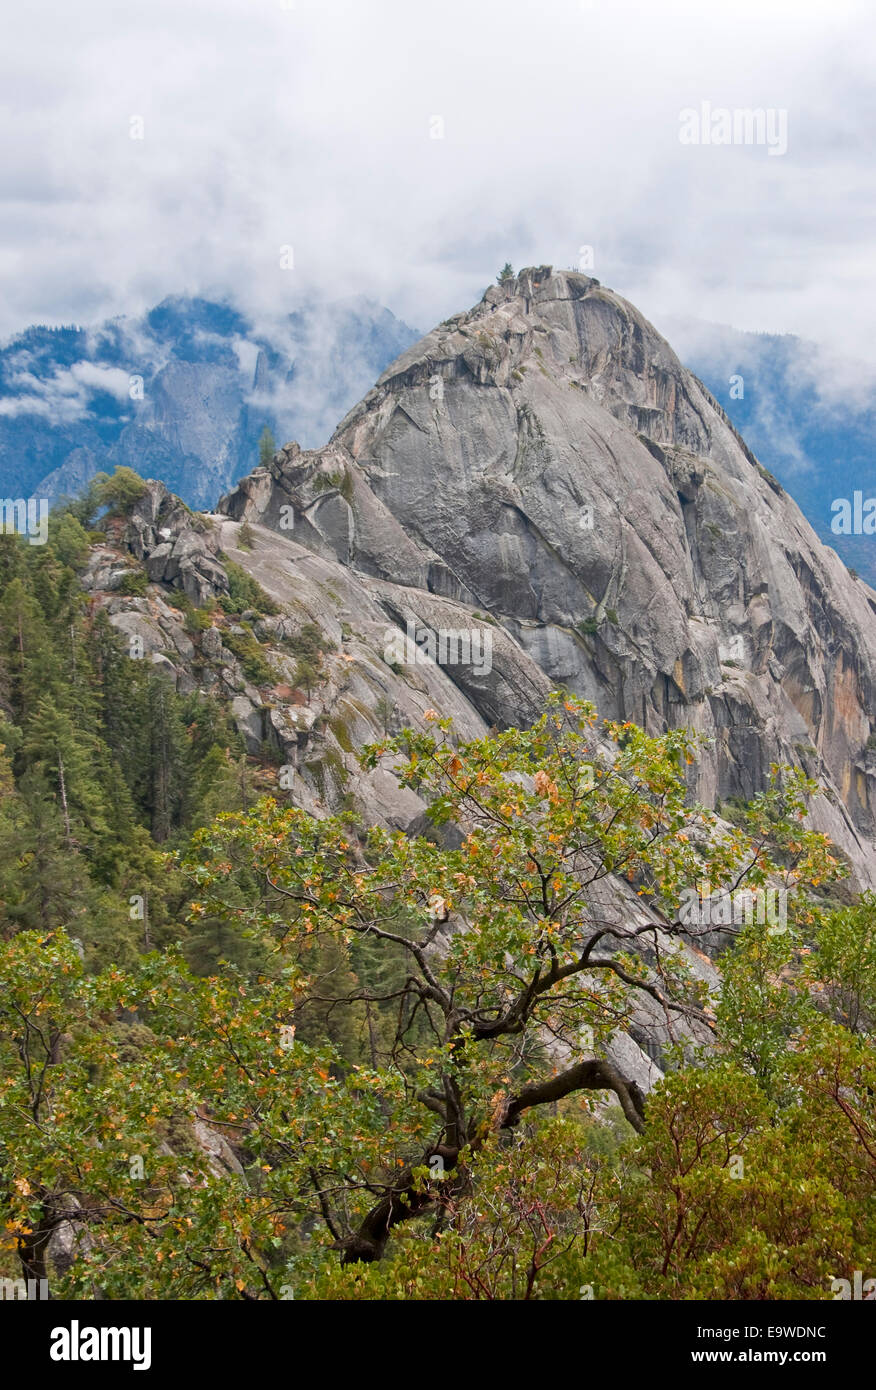 Sequoia National Park's Moro Rock granite dome formation. Stock Photo